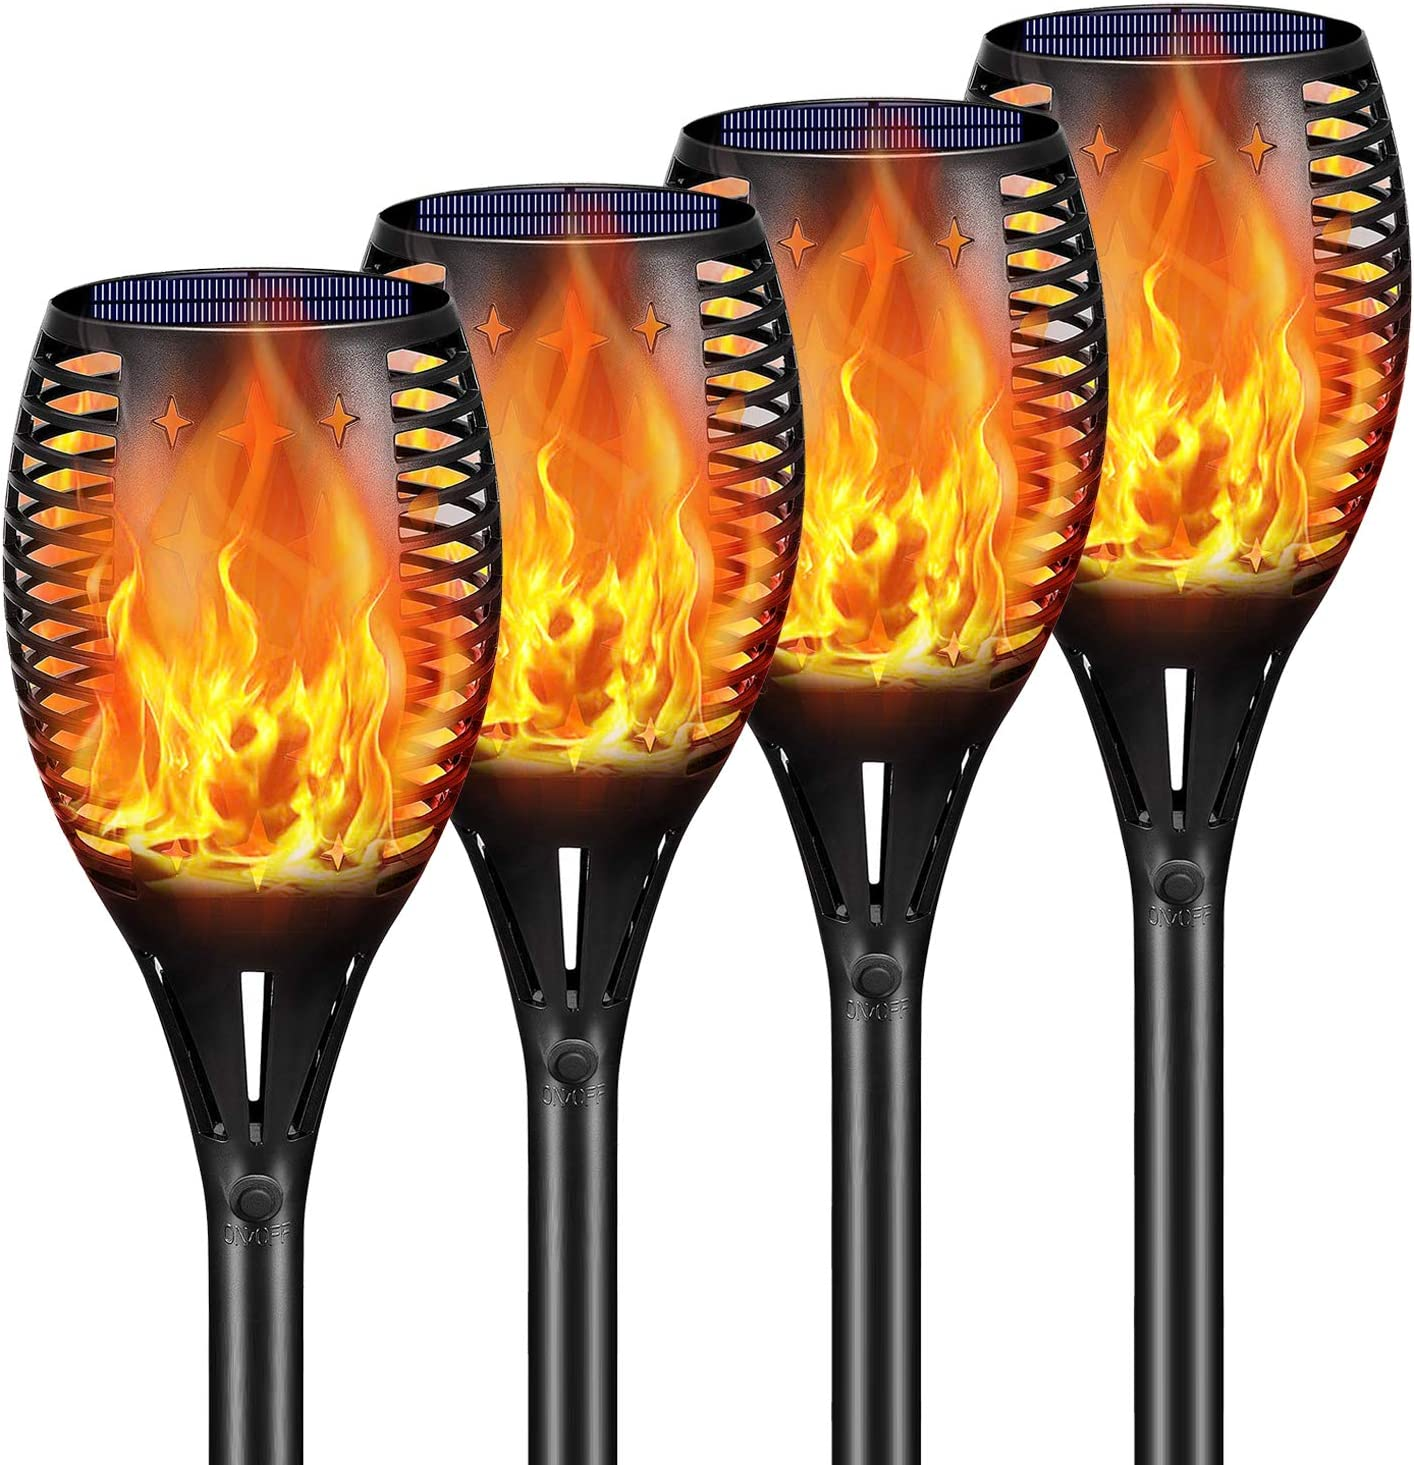 """Ambaret Solar Torch Lights,LED Landscape Lighting 43"""" Flickering Flames Solar Lights Upgraded,Waterproof Solar Flame Light Dusk to Dawn Auto On/Off Security Path Light for Yard Patio Driveway,4 Pack"""